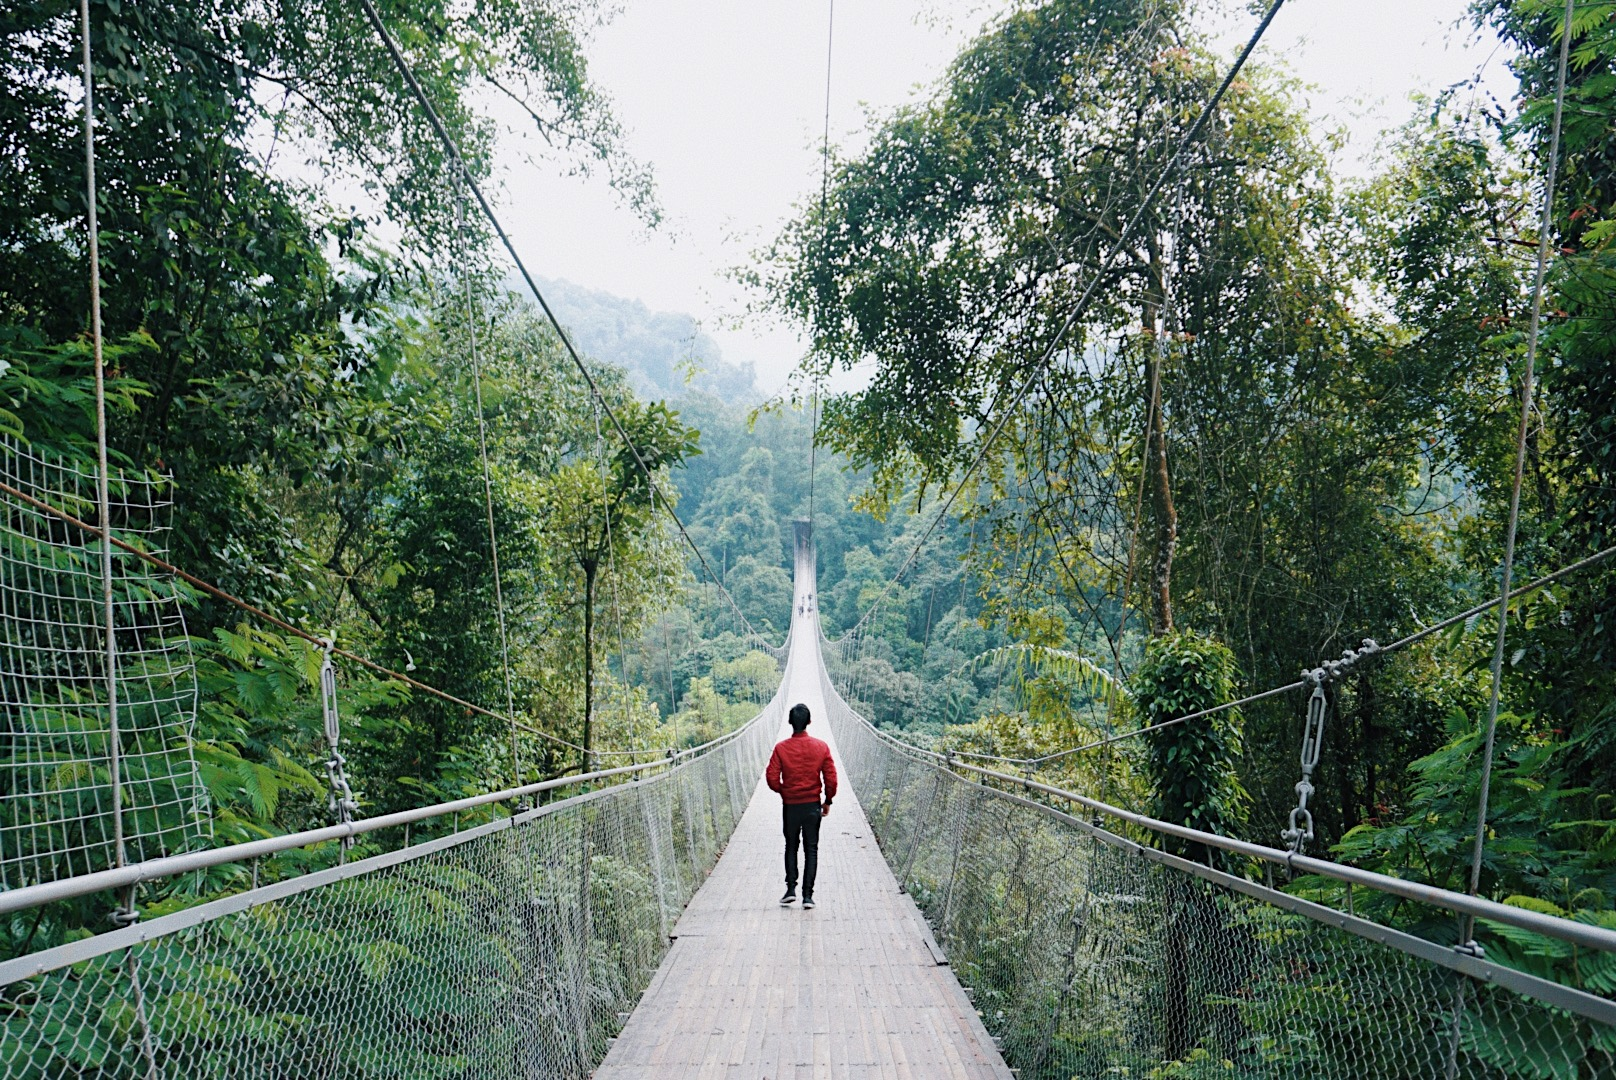 Situgunung Suspension Bridge